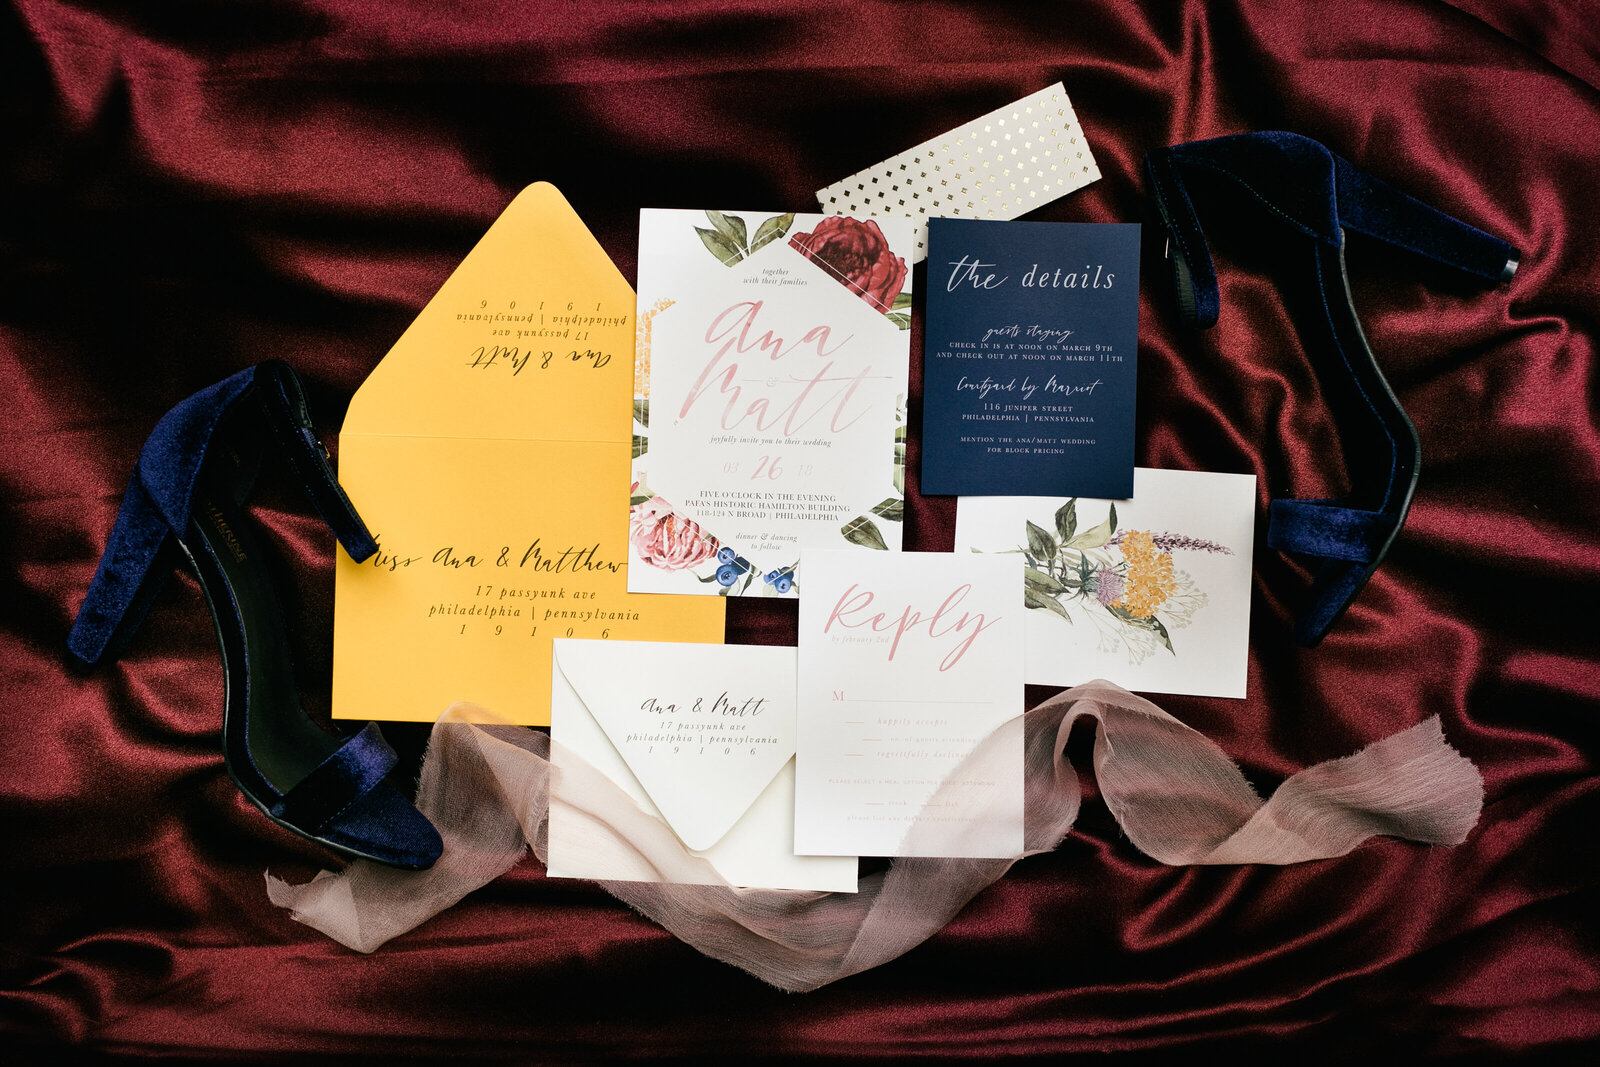 wedding invitations and shoes